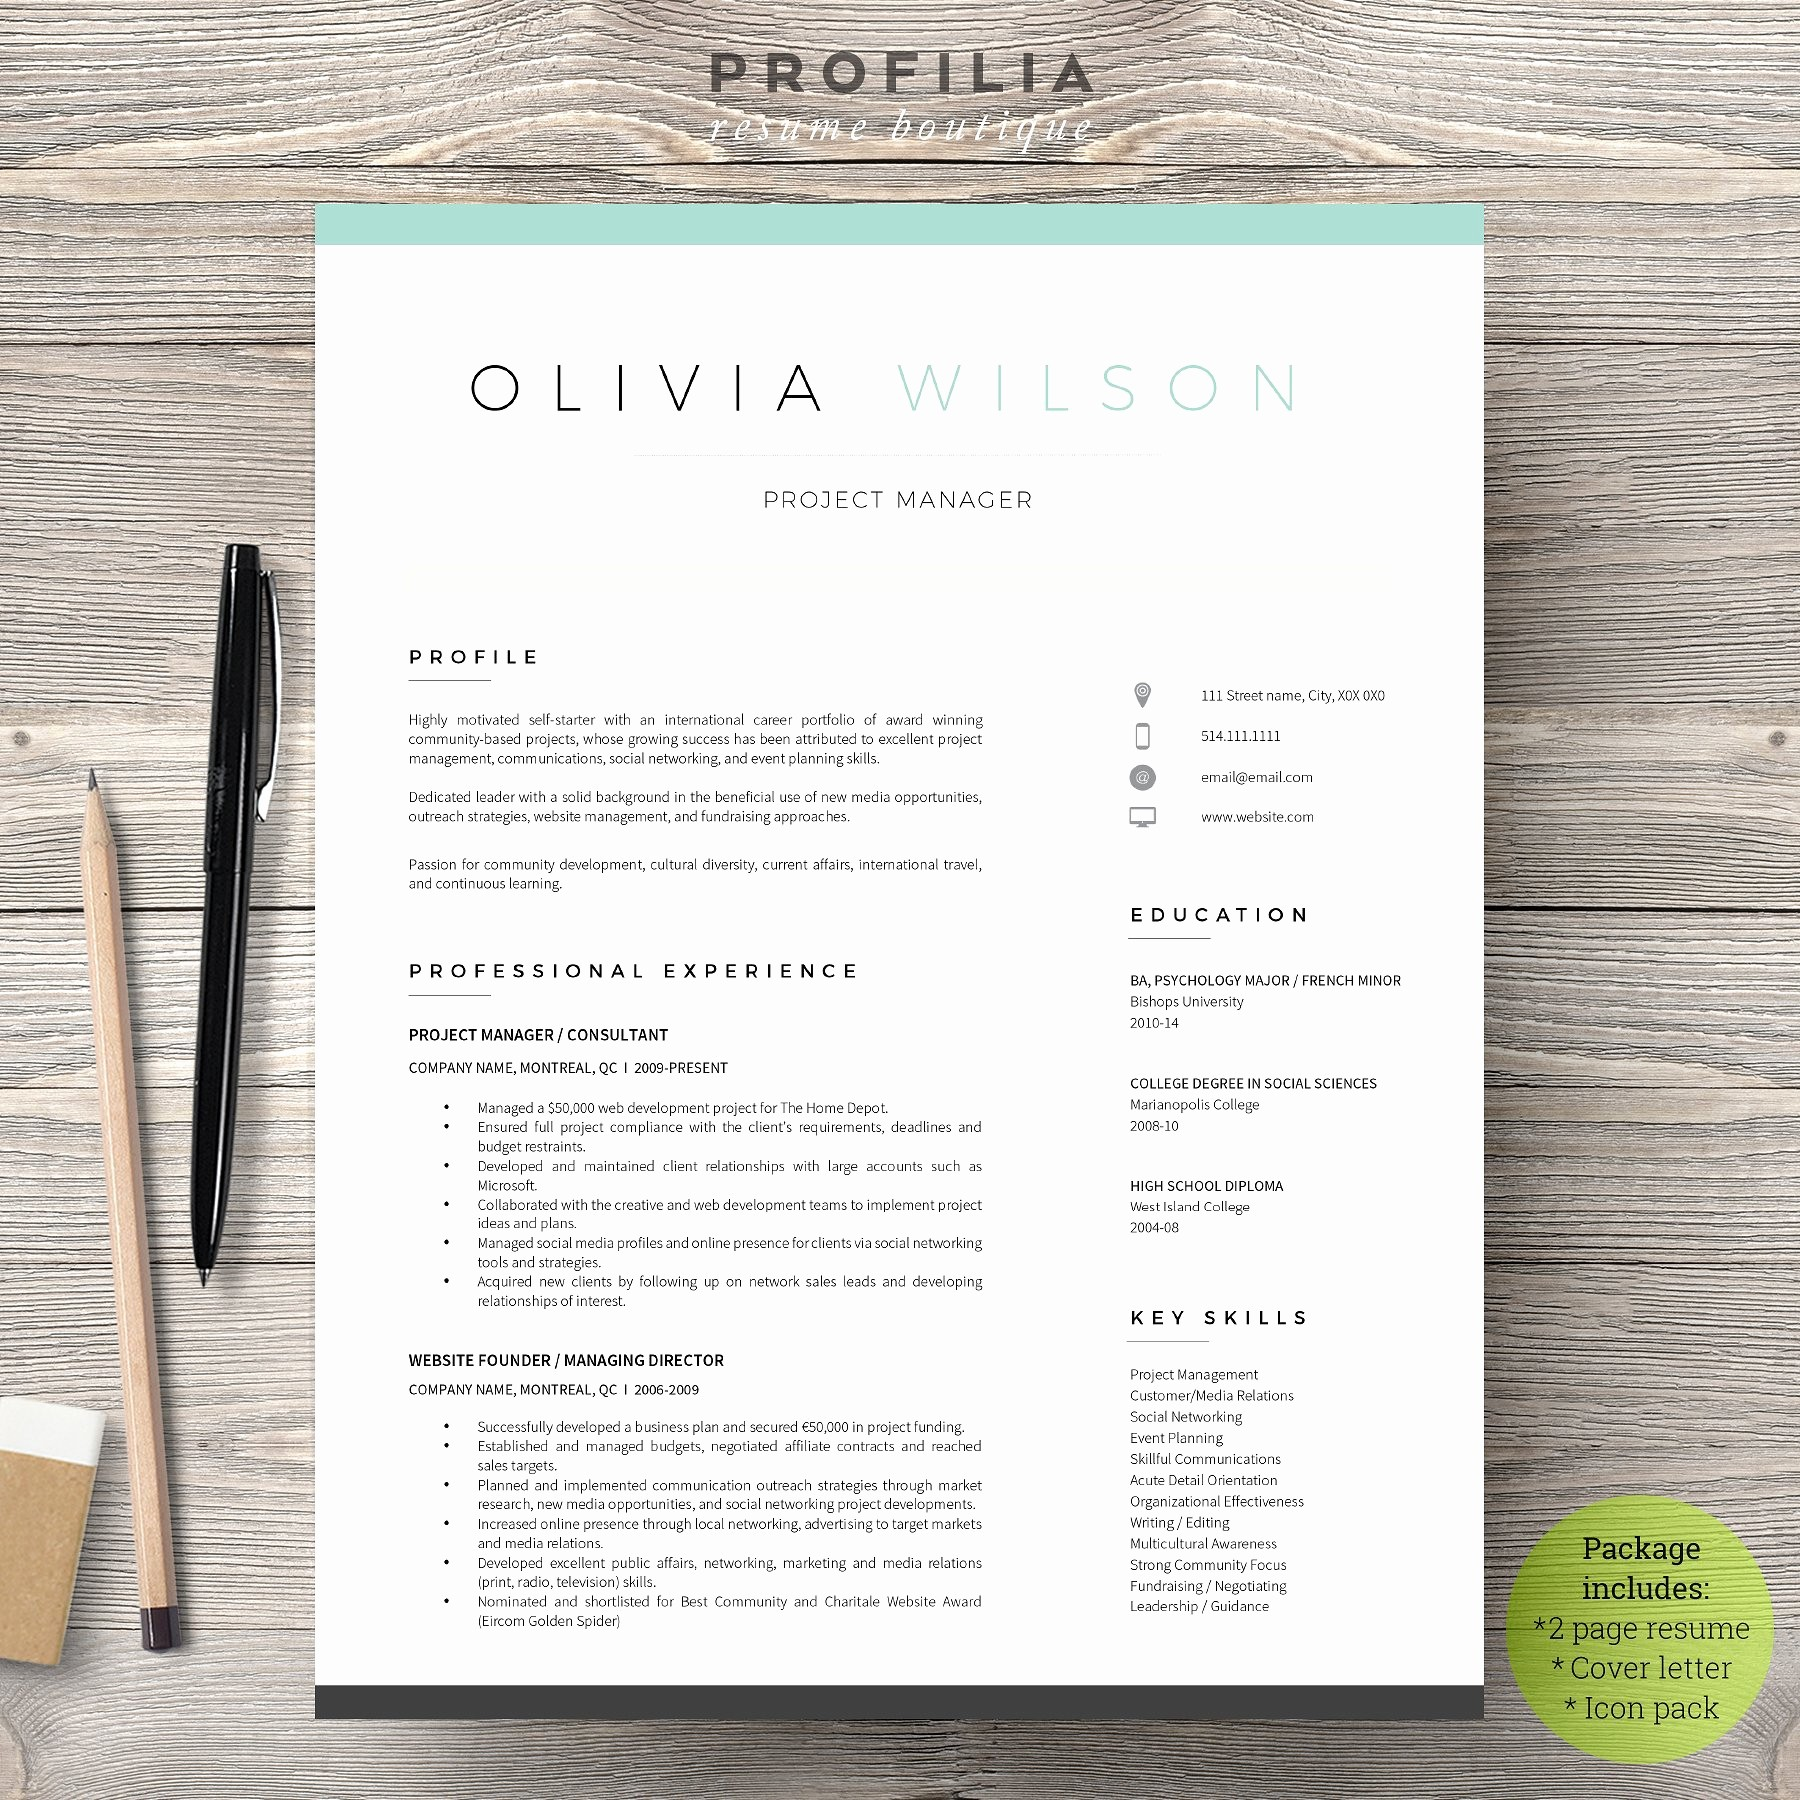 Resume Cover Letter Templates Free Unique Word Resume & Cover Letter Template Cover Letter